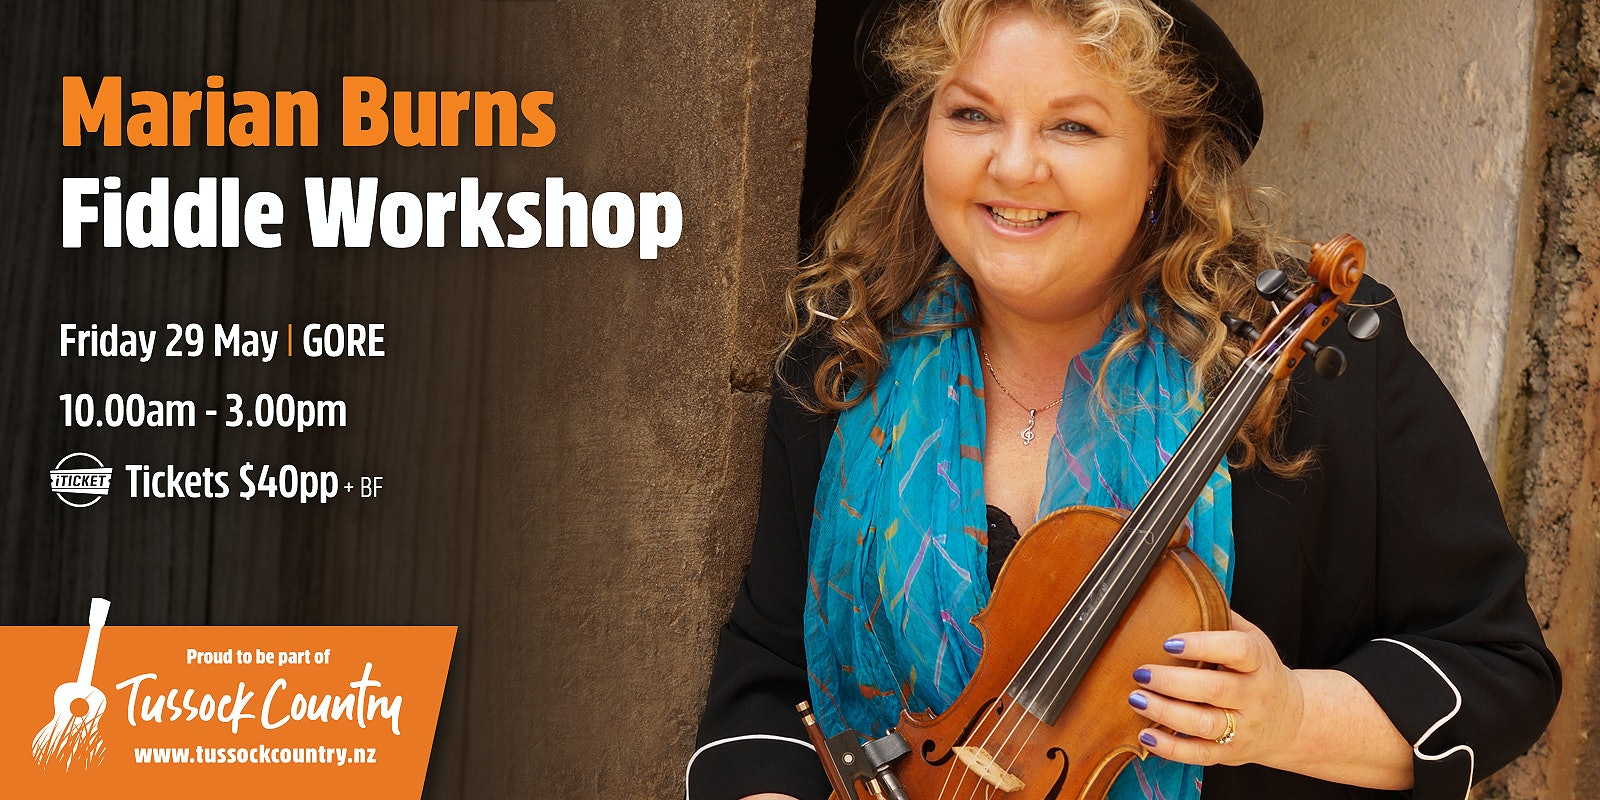 Marian Burns Fiddle Workshop